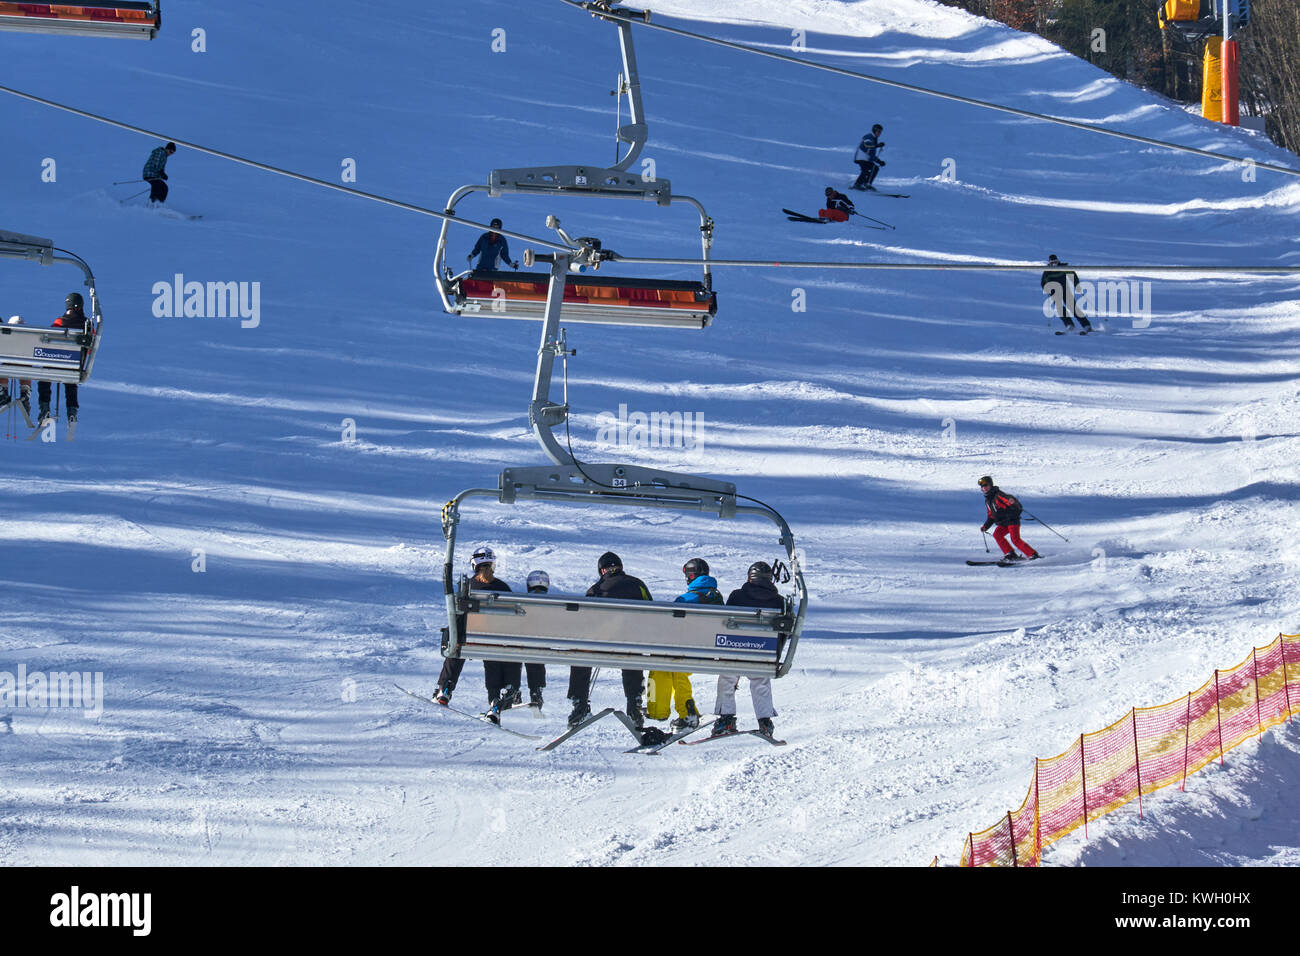 WINTERBERG, GERMANY - FEBRUARY 15, 2017: People having fun on a ski piste at Ski Carousel Winterberg - Stock Image